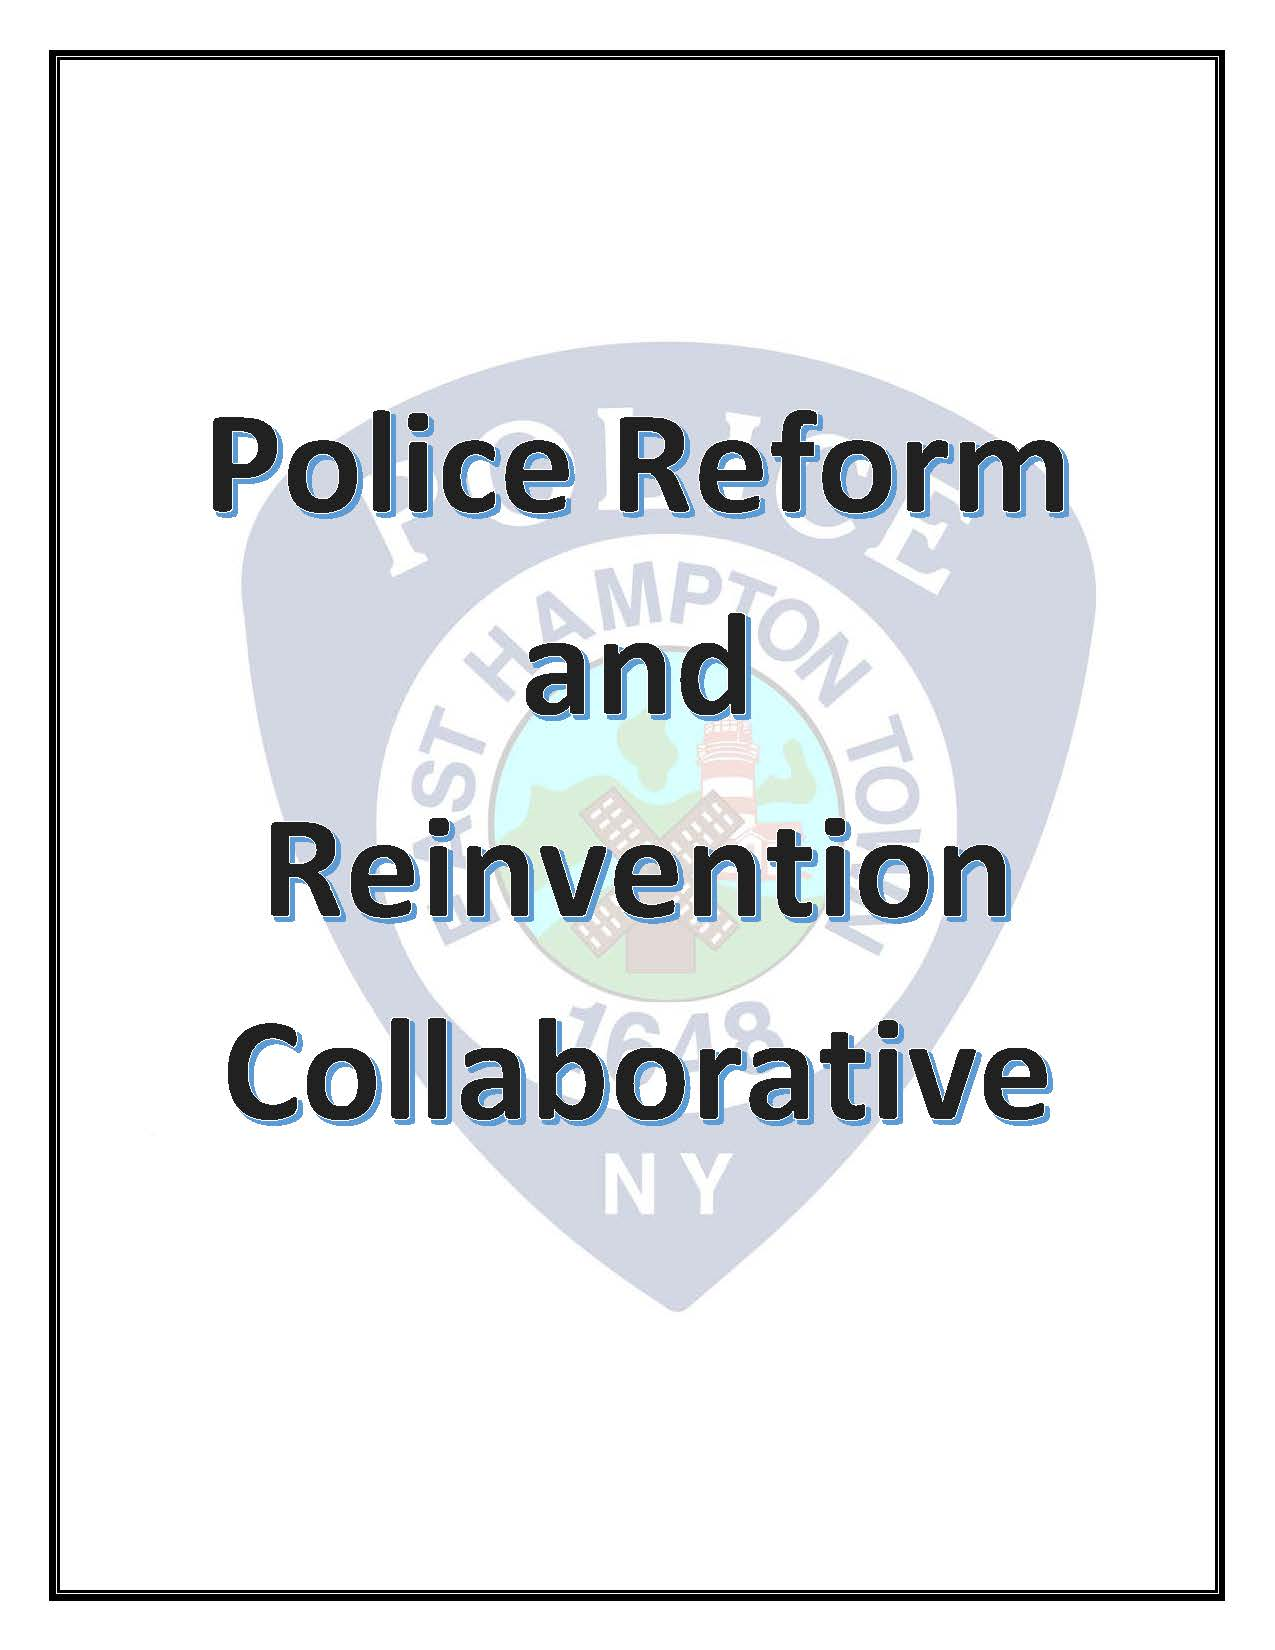 EAST HAMPTON TOWN POLICE REFORM PUBLIC DISCUSSION FLYER